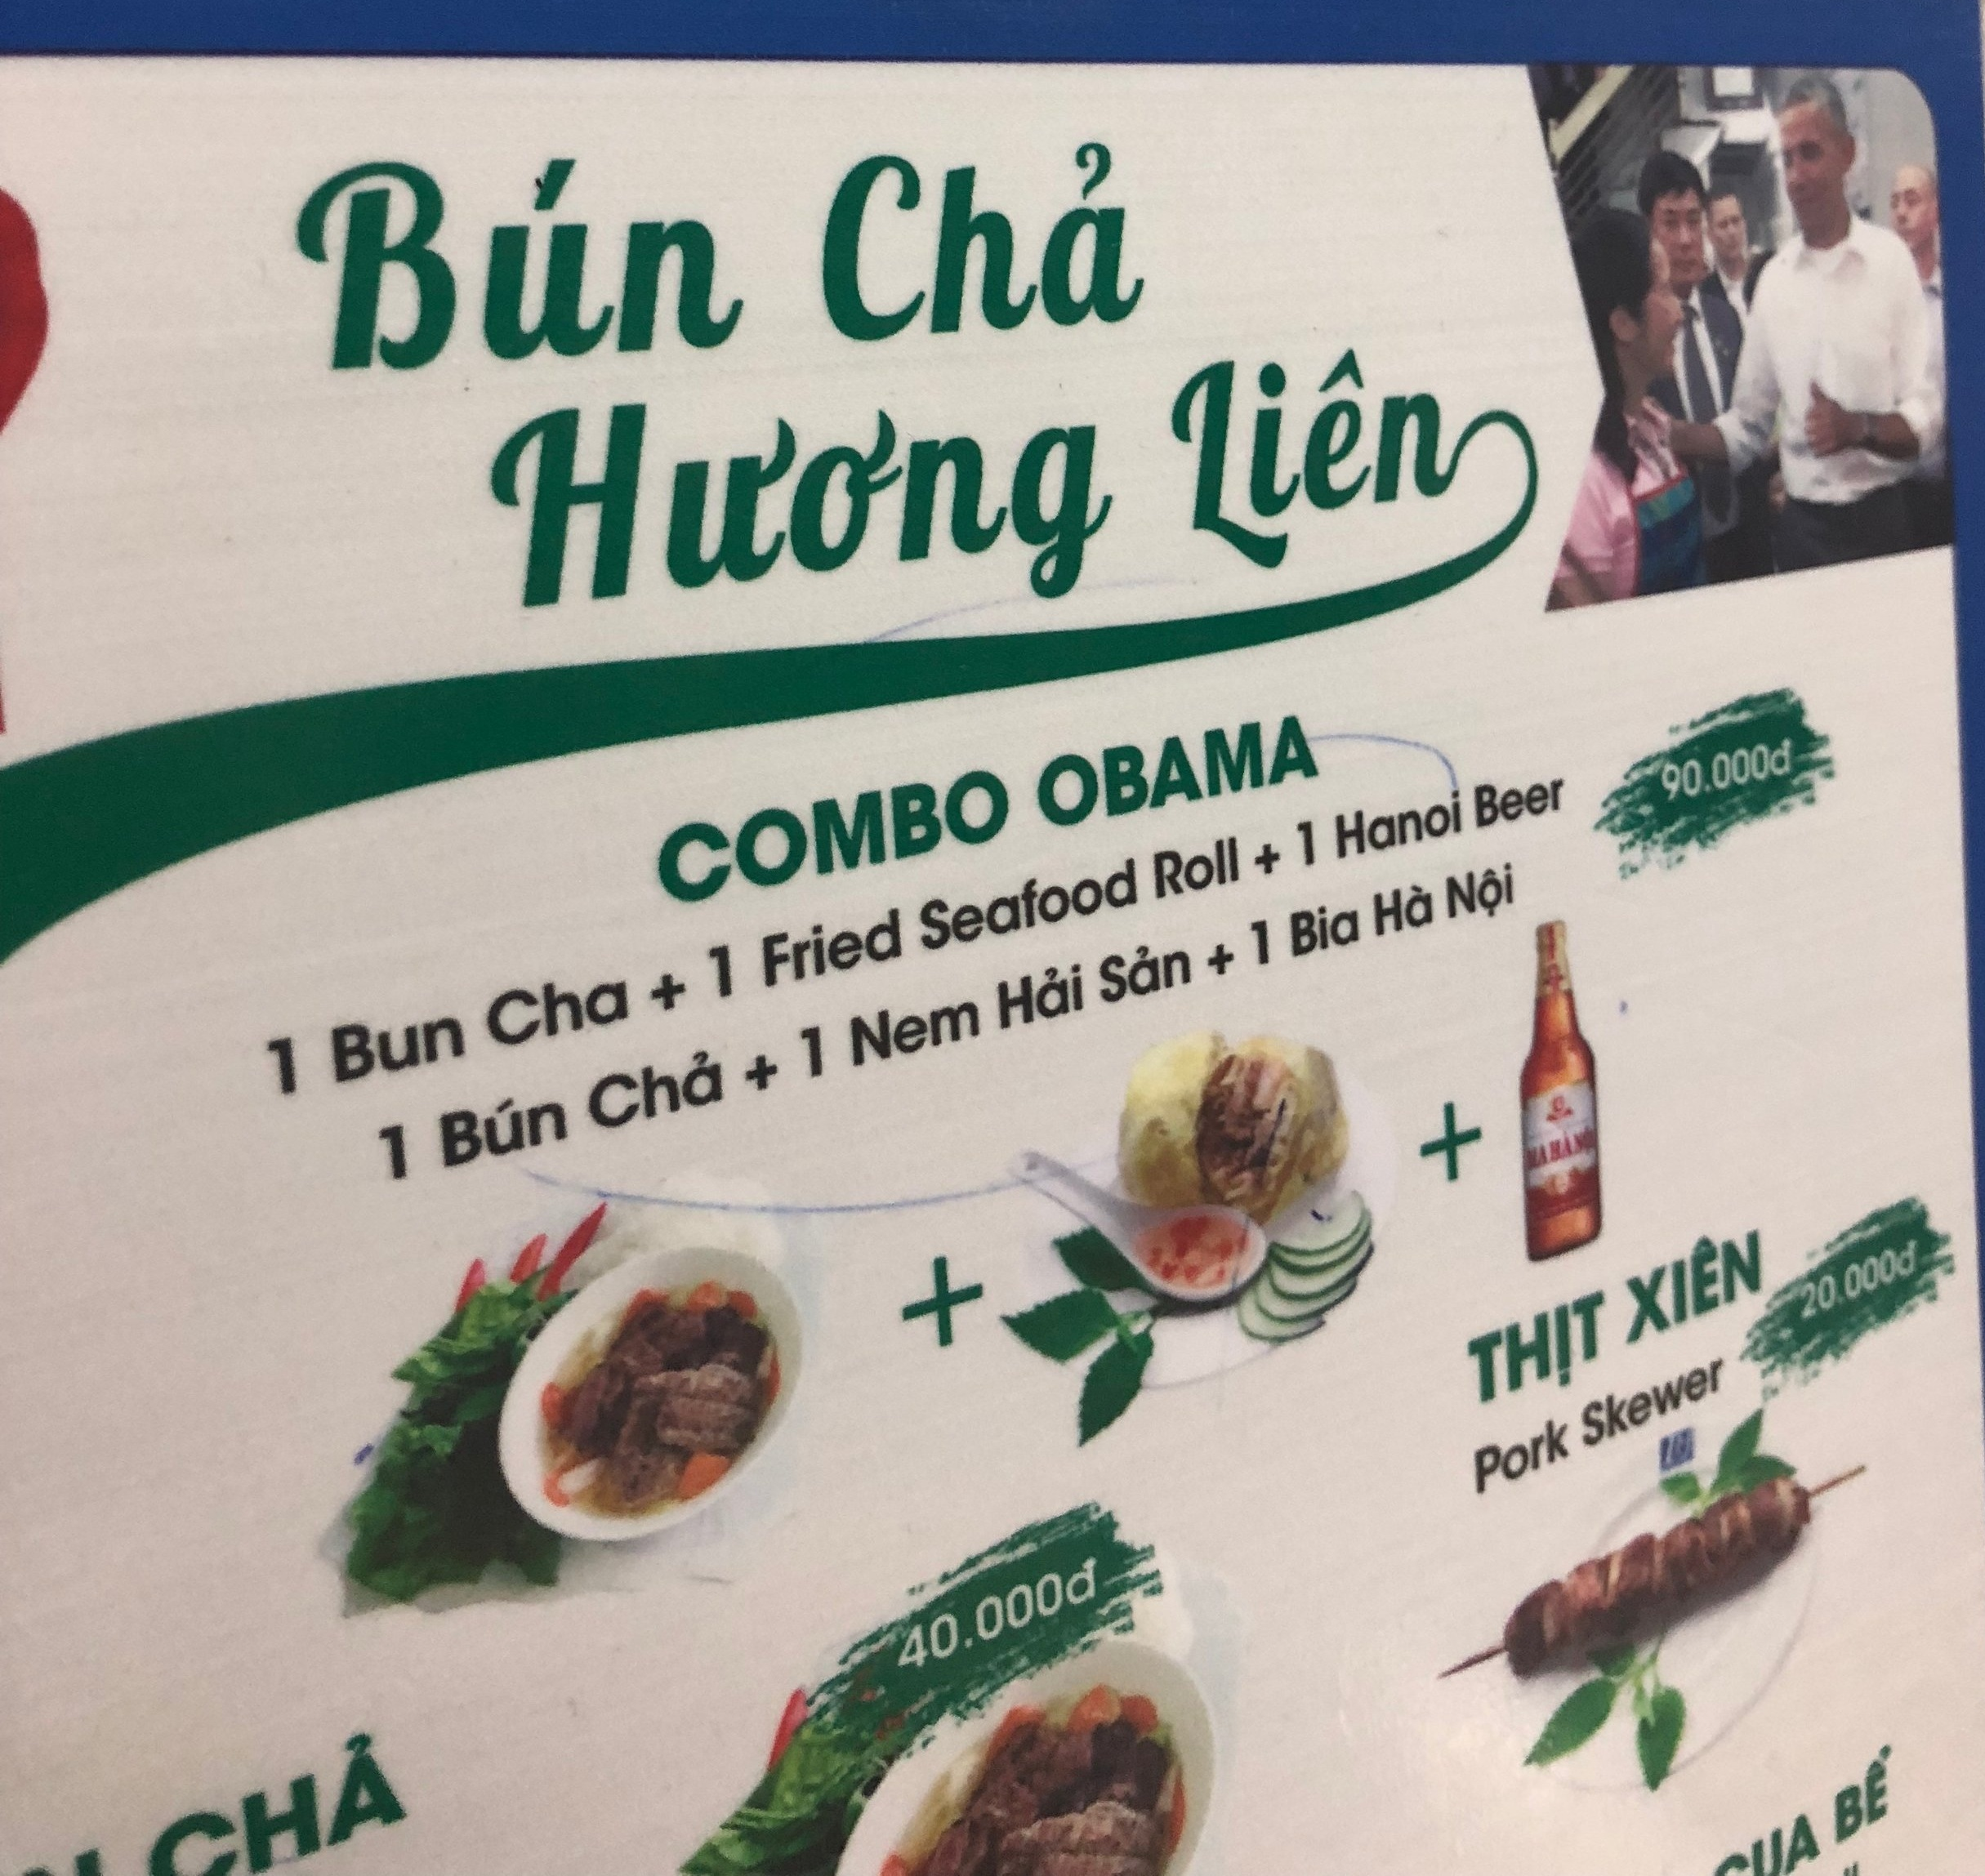 The menu! And a picture of Obama with the famed Obama combo.